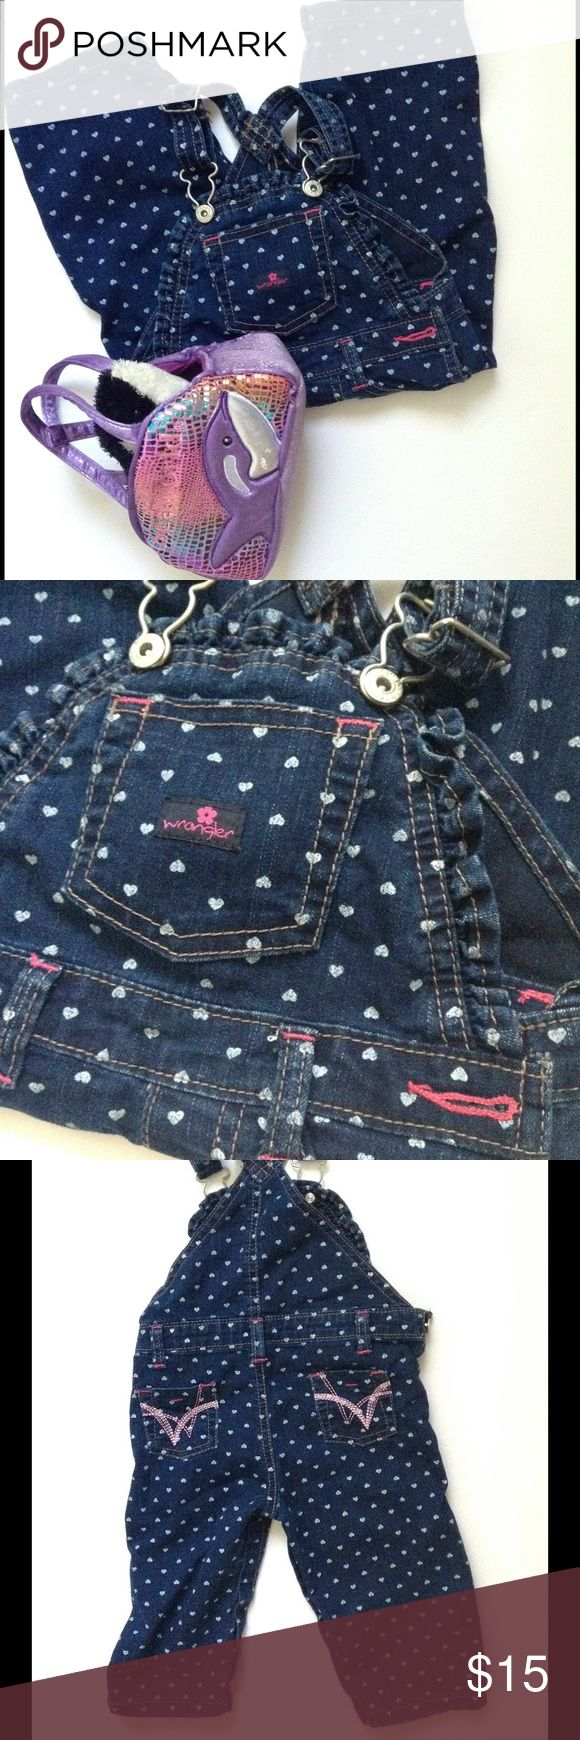 🆕 Cutest WRANGLER HEARTS OVERALLS 💕6-9Mo EUC WRANGLER DENIM OVERALLS with White Hearts and Pink trim. Button closure at sides, straps and crotch.  Minimal to no wear. Excellent used condition. Wrangler Bottoms Overalls